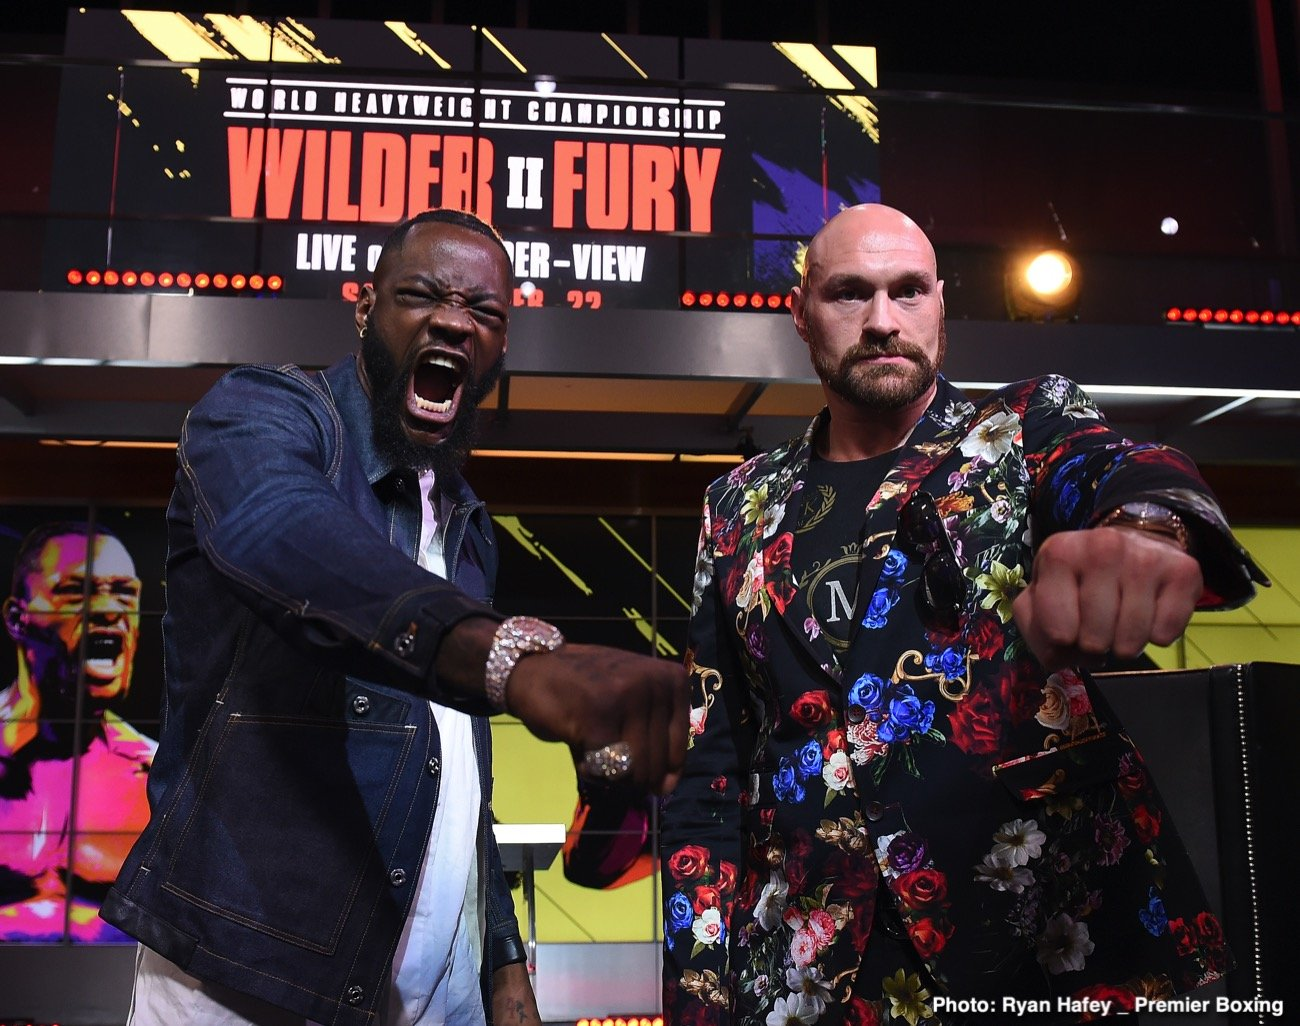 Tyson Fury - It's looking as though Tyson Fury and Deontay Wilder will have to wait until a few days before the Christmas holidays before they can settle their rivalry. For although many fans feel Fury has already proven he is the superior fighter of the two - what with his display in the drawn fight making many feel he actually won, and then the total hammering Fury dished out on Wilder in the rematch leaving no doubt - the third fight is contracted and will go ahead.